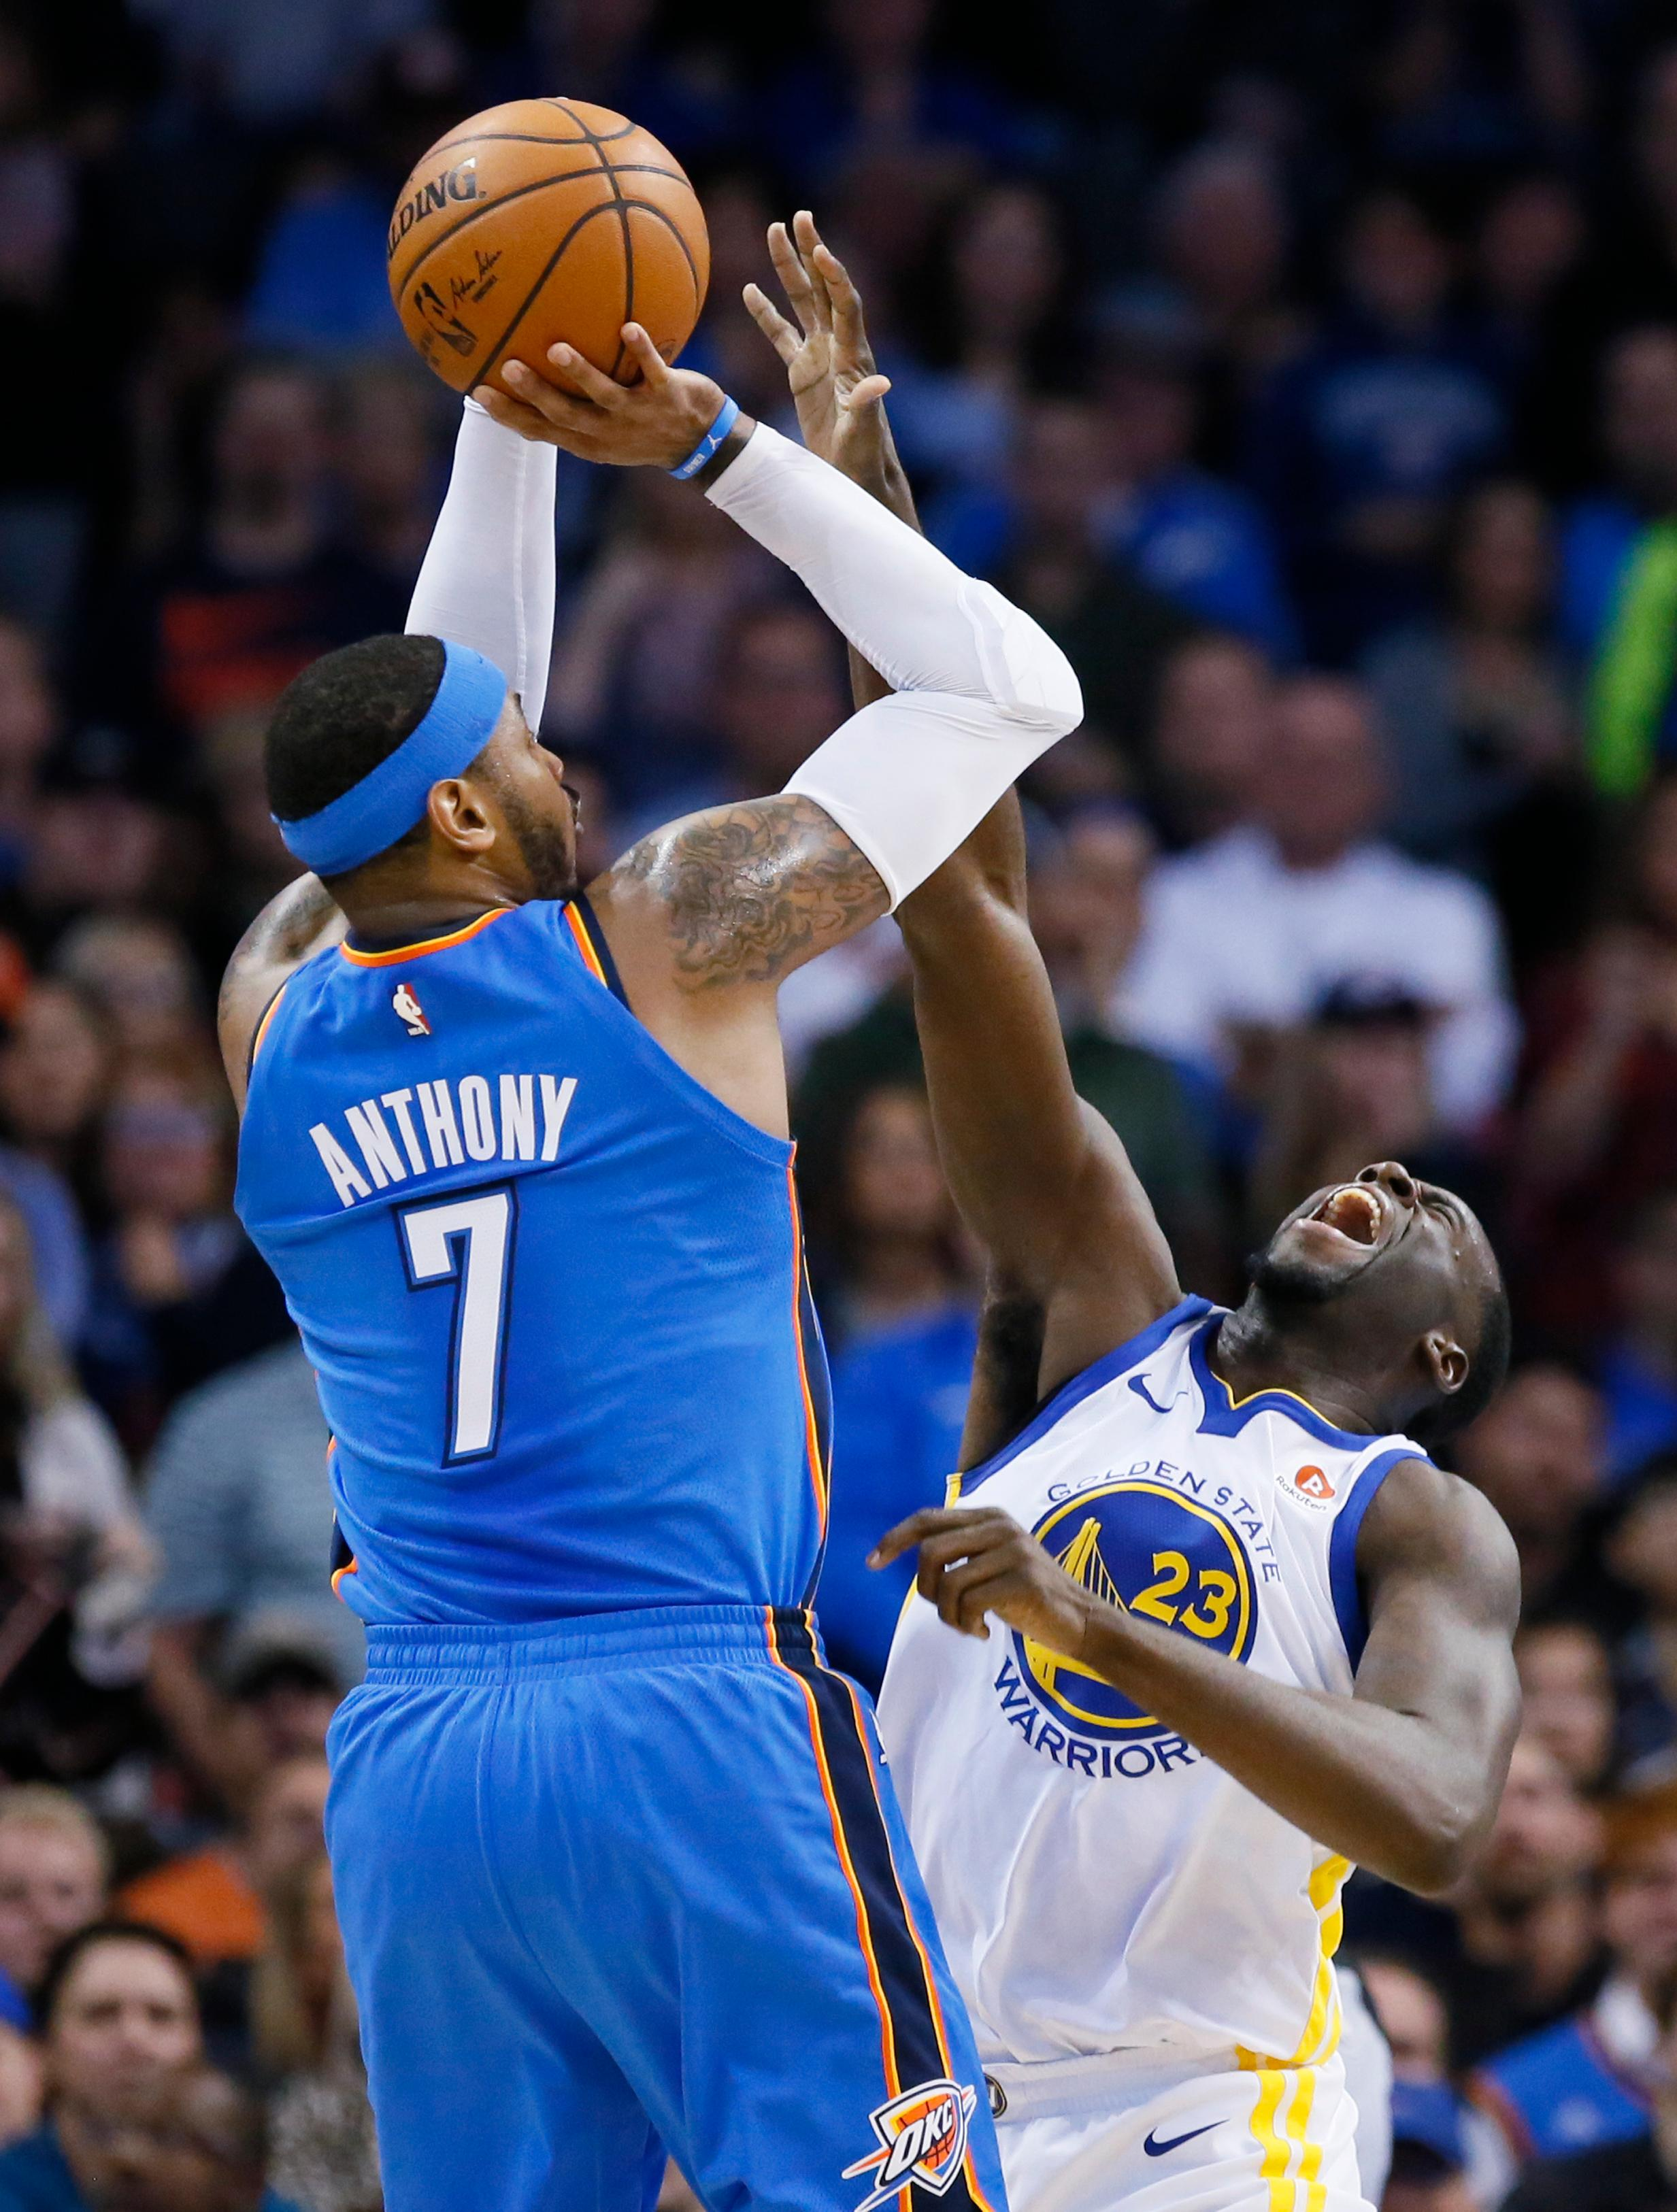 Oklahoma City Thunder forward Carmelo Anthony (7) shoots over Golden State Warriors forward Draymond Green (23) during the first quarter of an NBA basketball game in Oklahoma City, Wednesday, Nov. 22, 2017. (AP Photo/Sue Ogrocki)